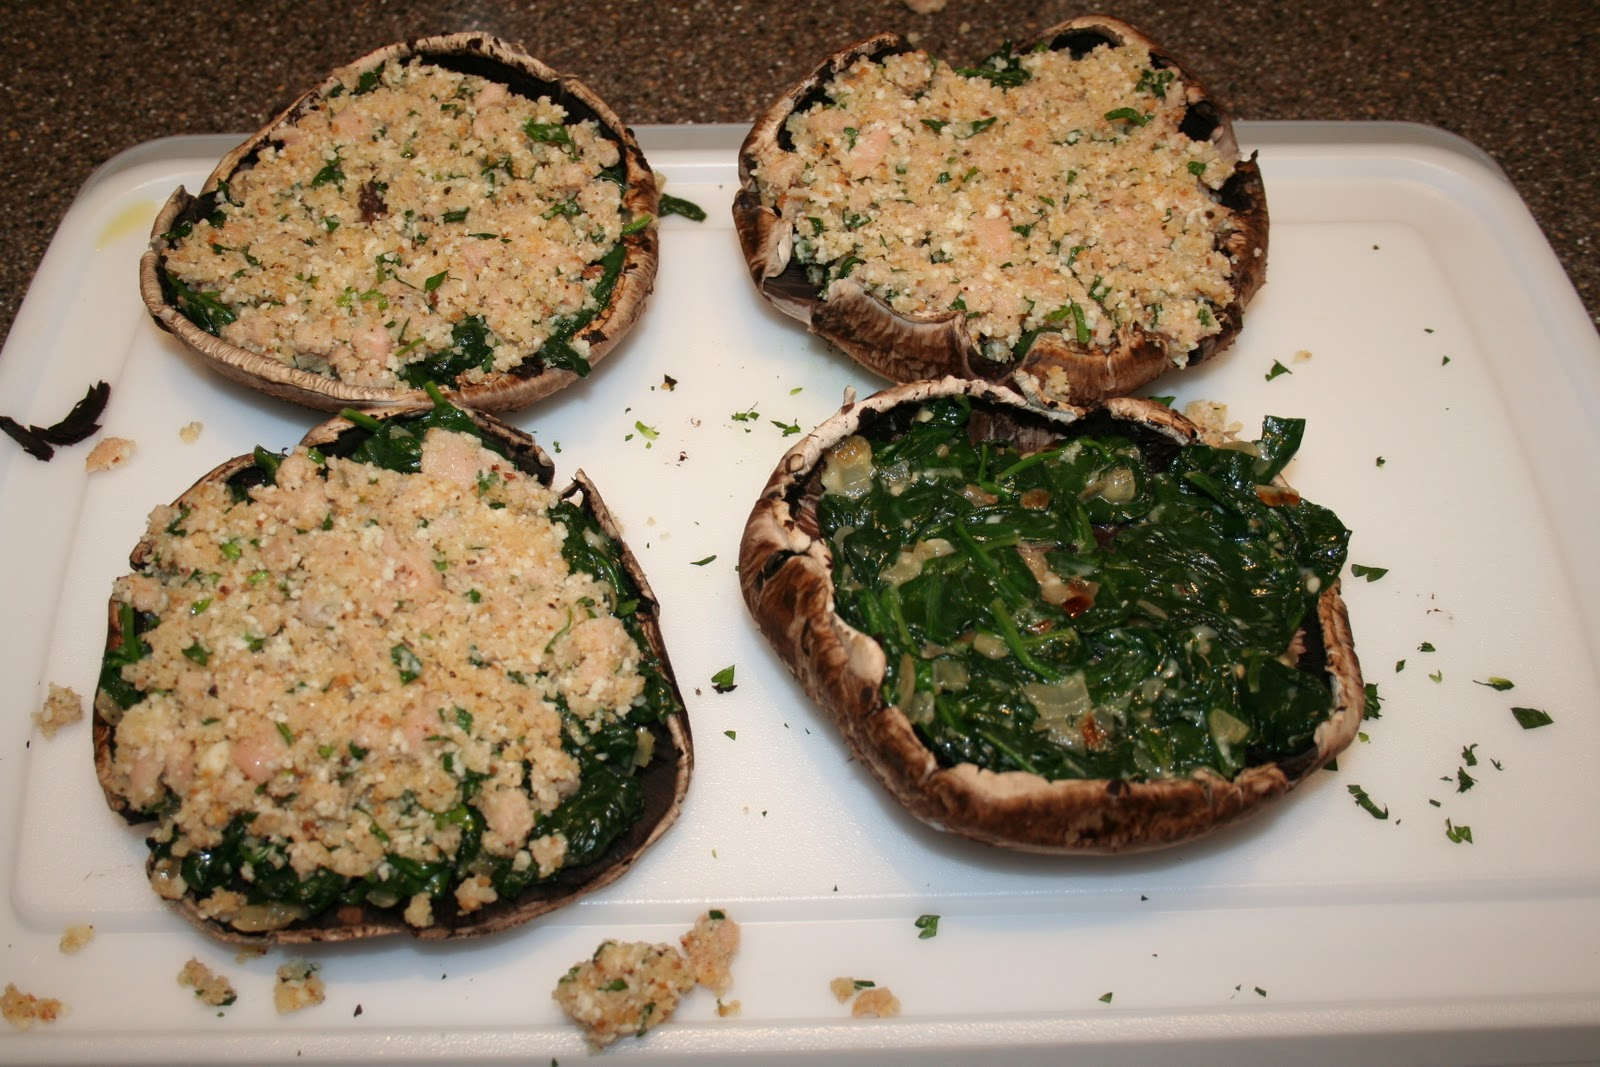 Italian-Fusion: Clam and Spinach Stuffed Portabella Mushrooms